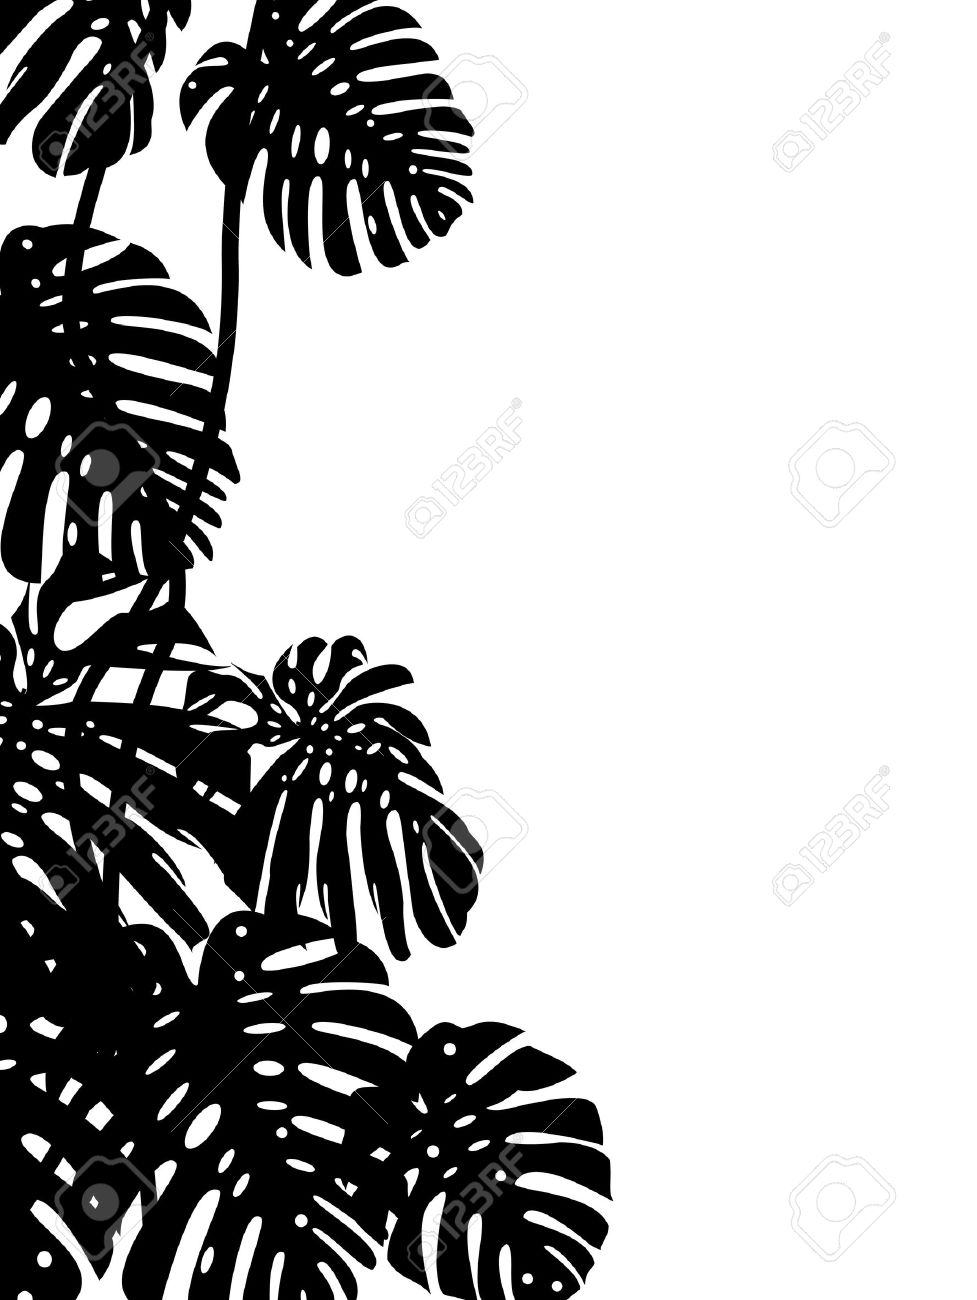 jungle background clipart black and white 20 free Cliparts ...